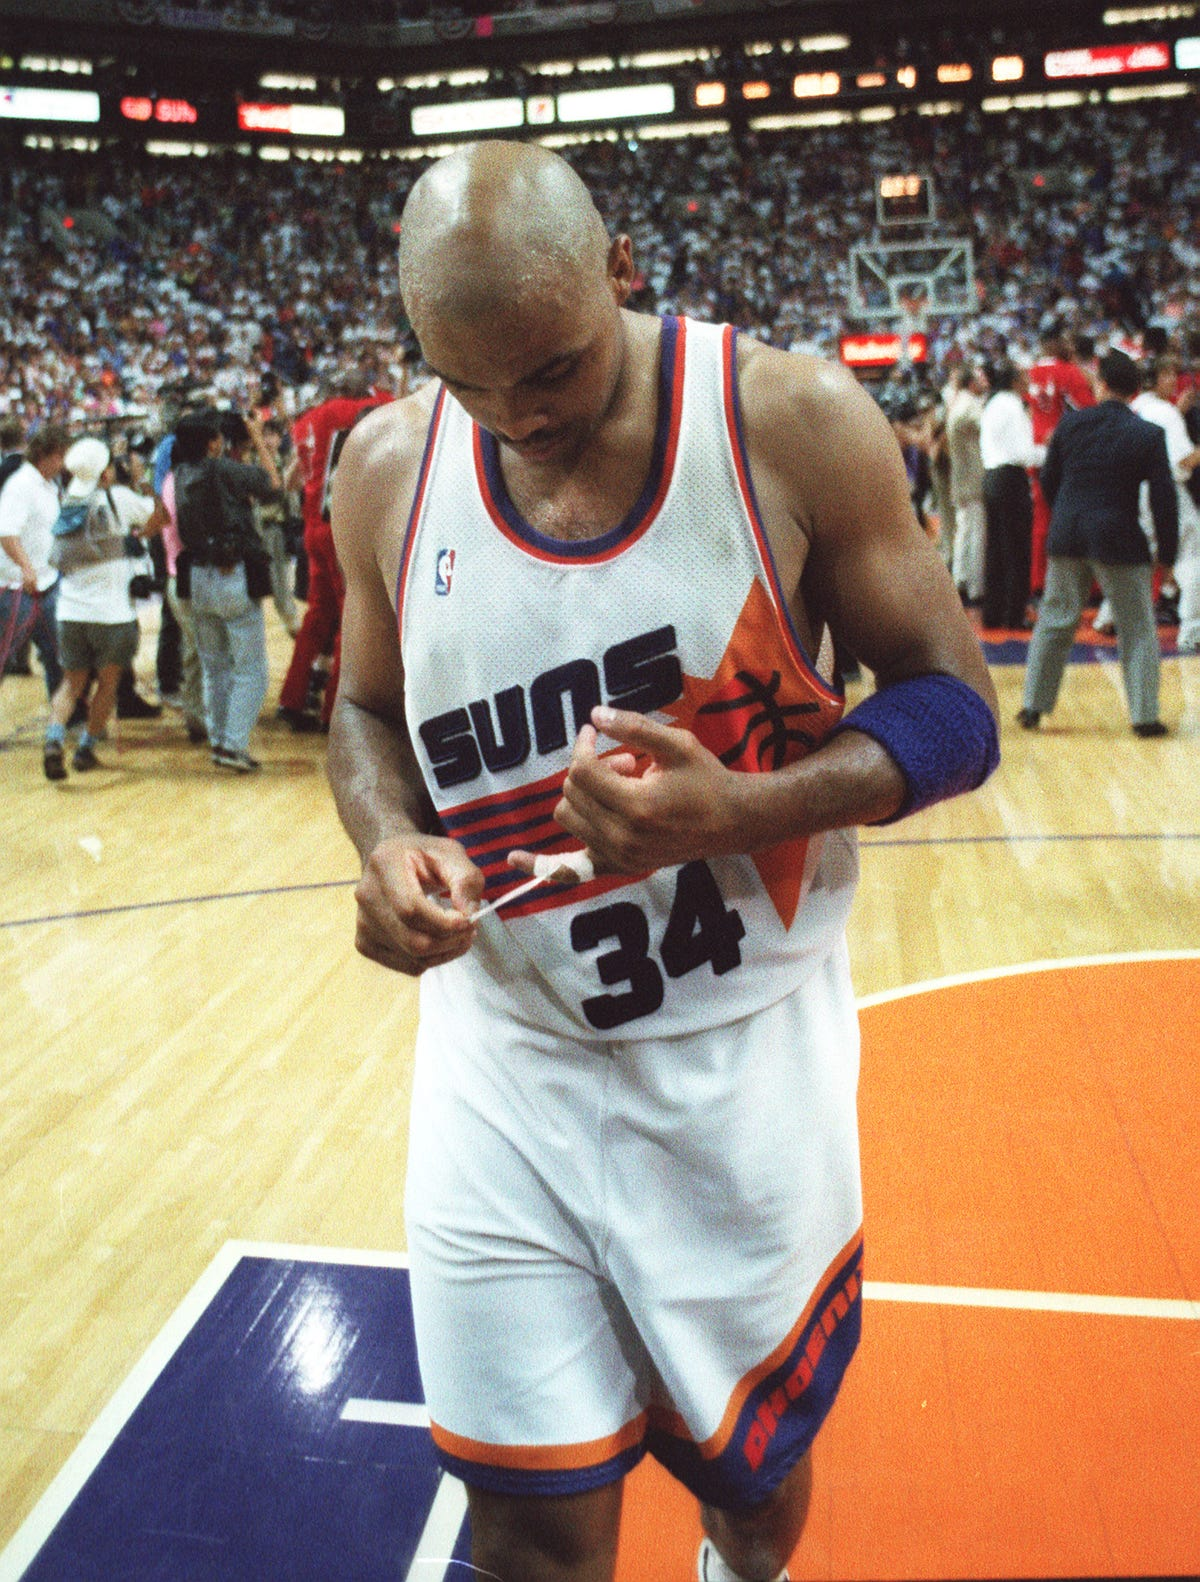 Charles Barkley's not on Suns all-time roster in NBA2K18